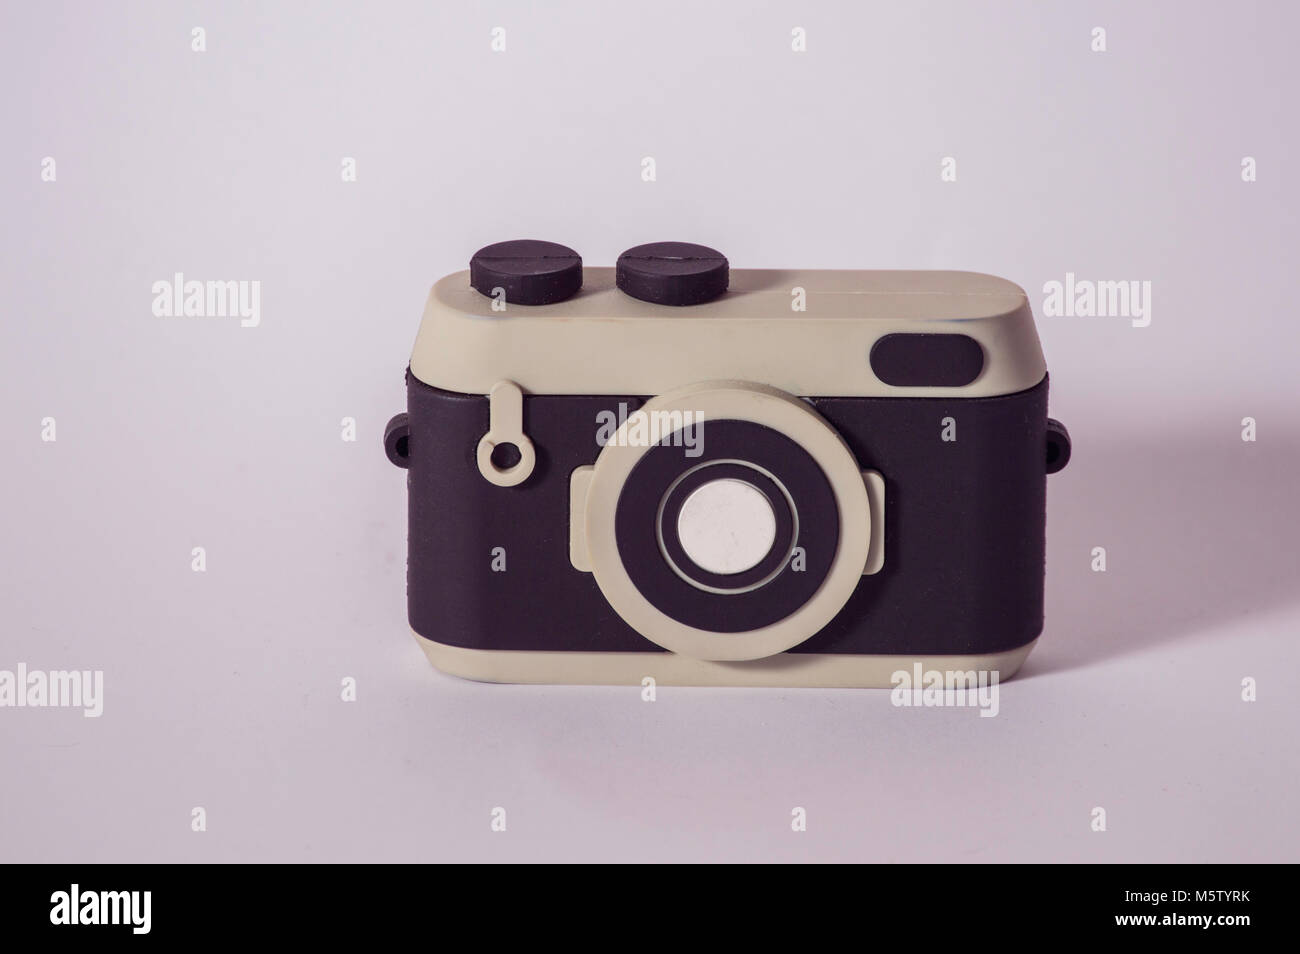 portable mobile phone charger in the shape of a camera on a white background - Stock Image